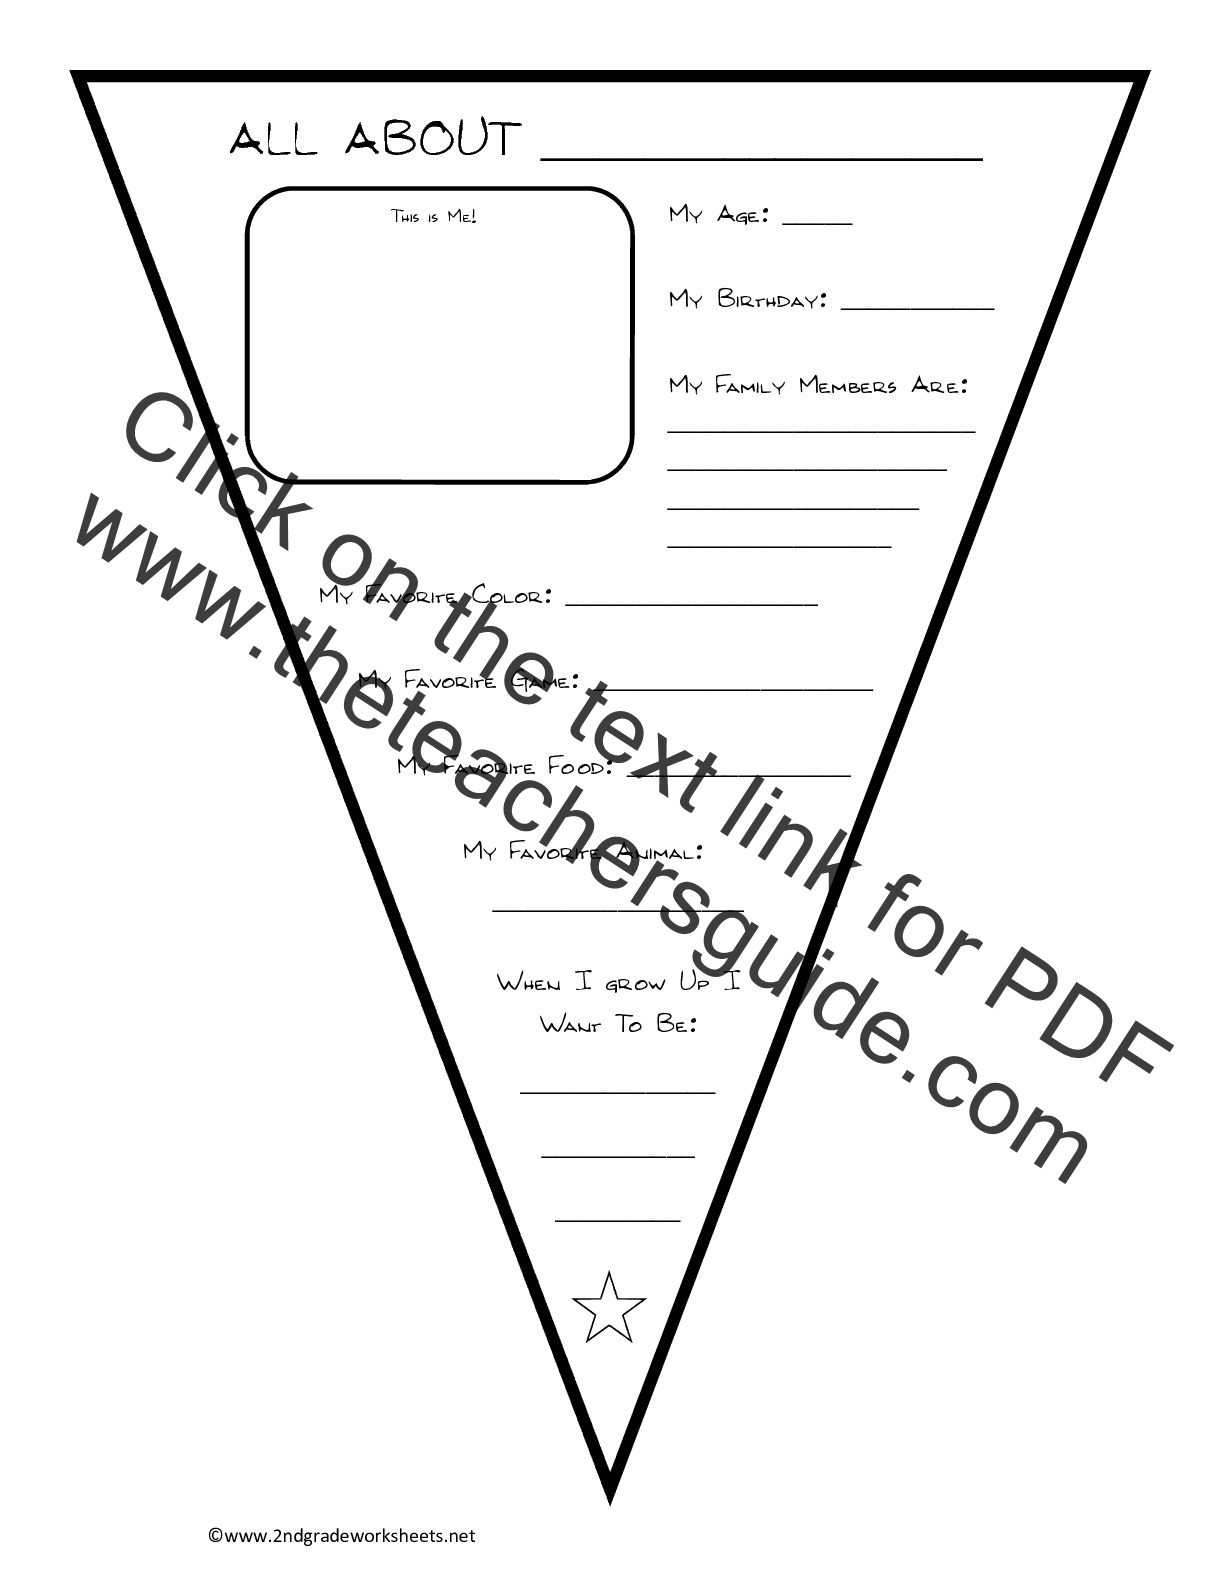 photo regarding Free Printable All About Me Worksheet known as Totally free Back again in the direction of Faculty Worksheets and Printouts